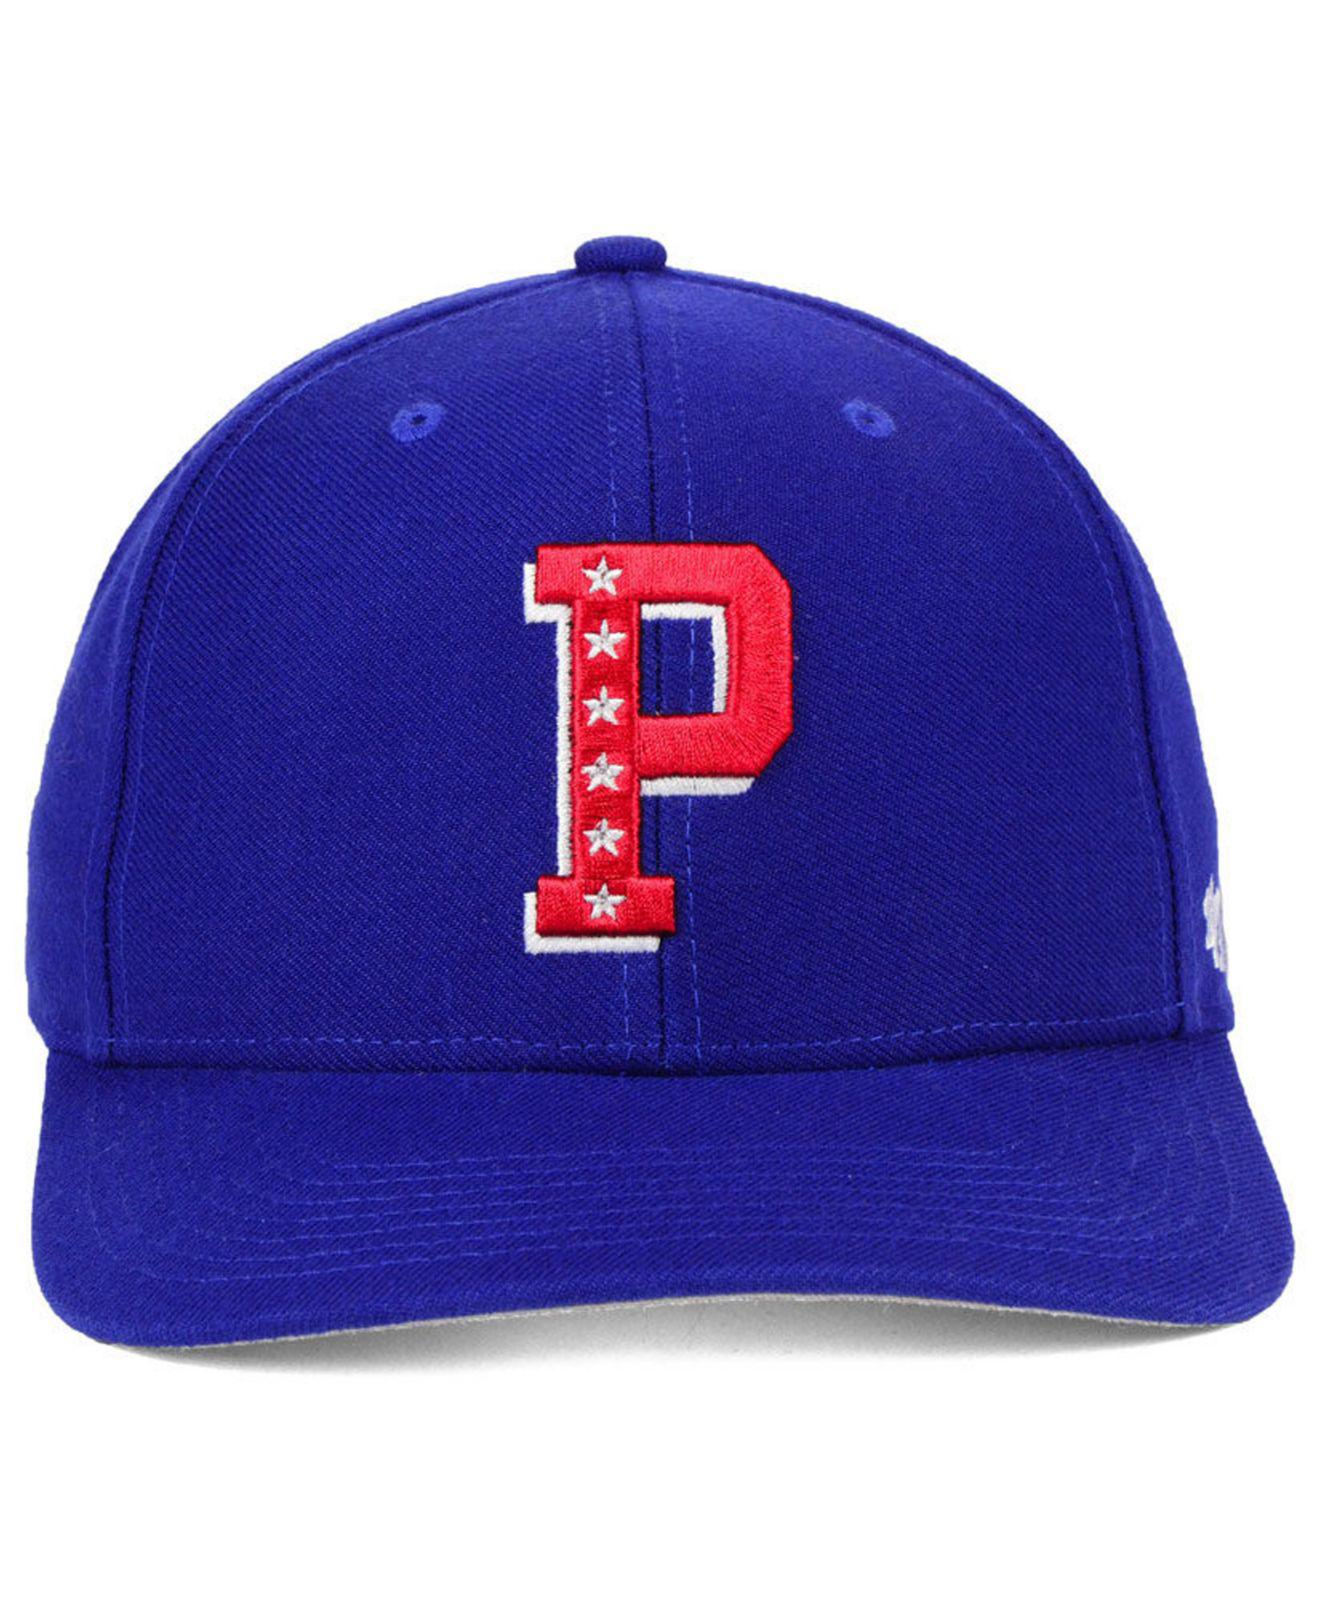 finest selection 804c2 11fab ... amazon lyst 47 brand philadelphia 76ers mash up mvp cap in blue for men  bcfda ecebd